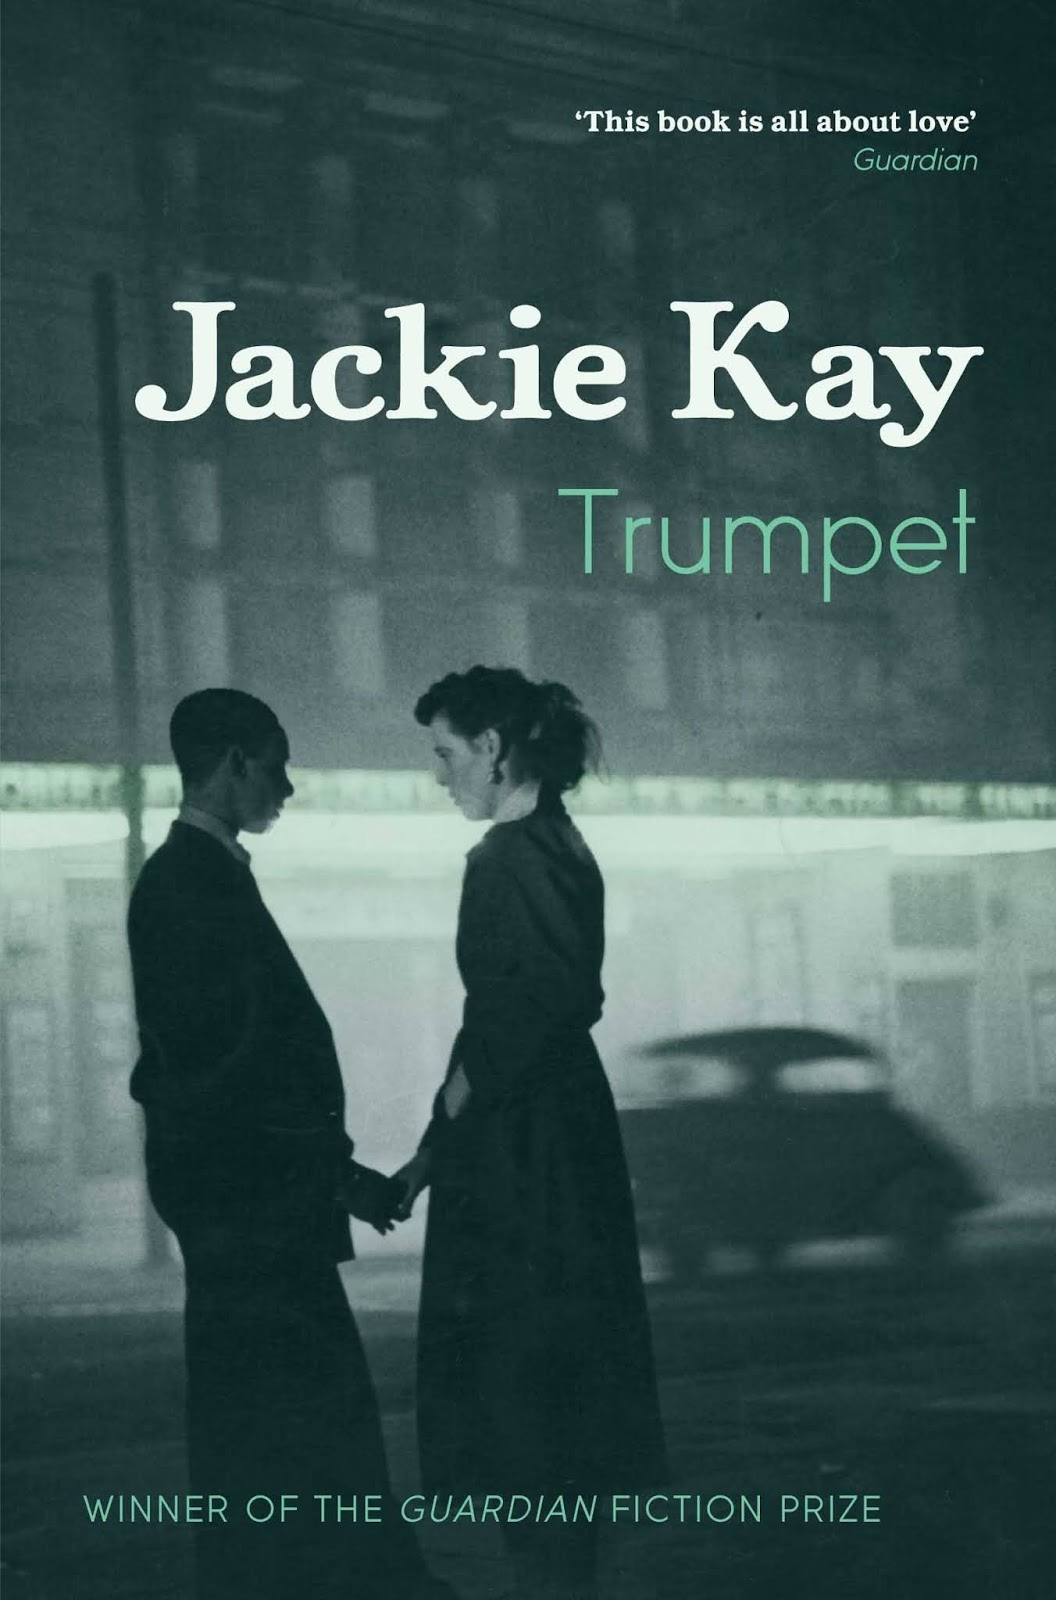 Book cover for Trumpet by Jackie Kay Trumpet in the South Manchester, Chorlton, Cheadle, Fallowfield, Burnage, Levenshulme, Heaton Moor, Heaton Mersey, Heaton Norris, Heaton Chapel, Northenden, and Didsbury book group